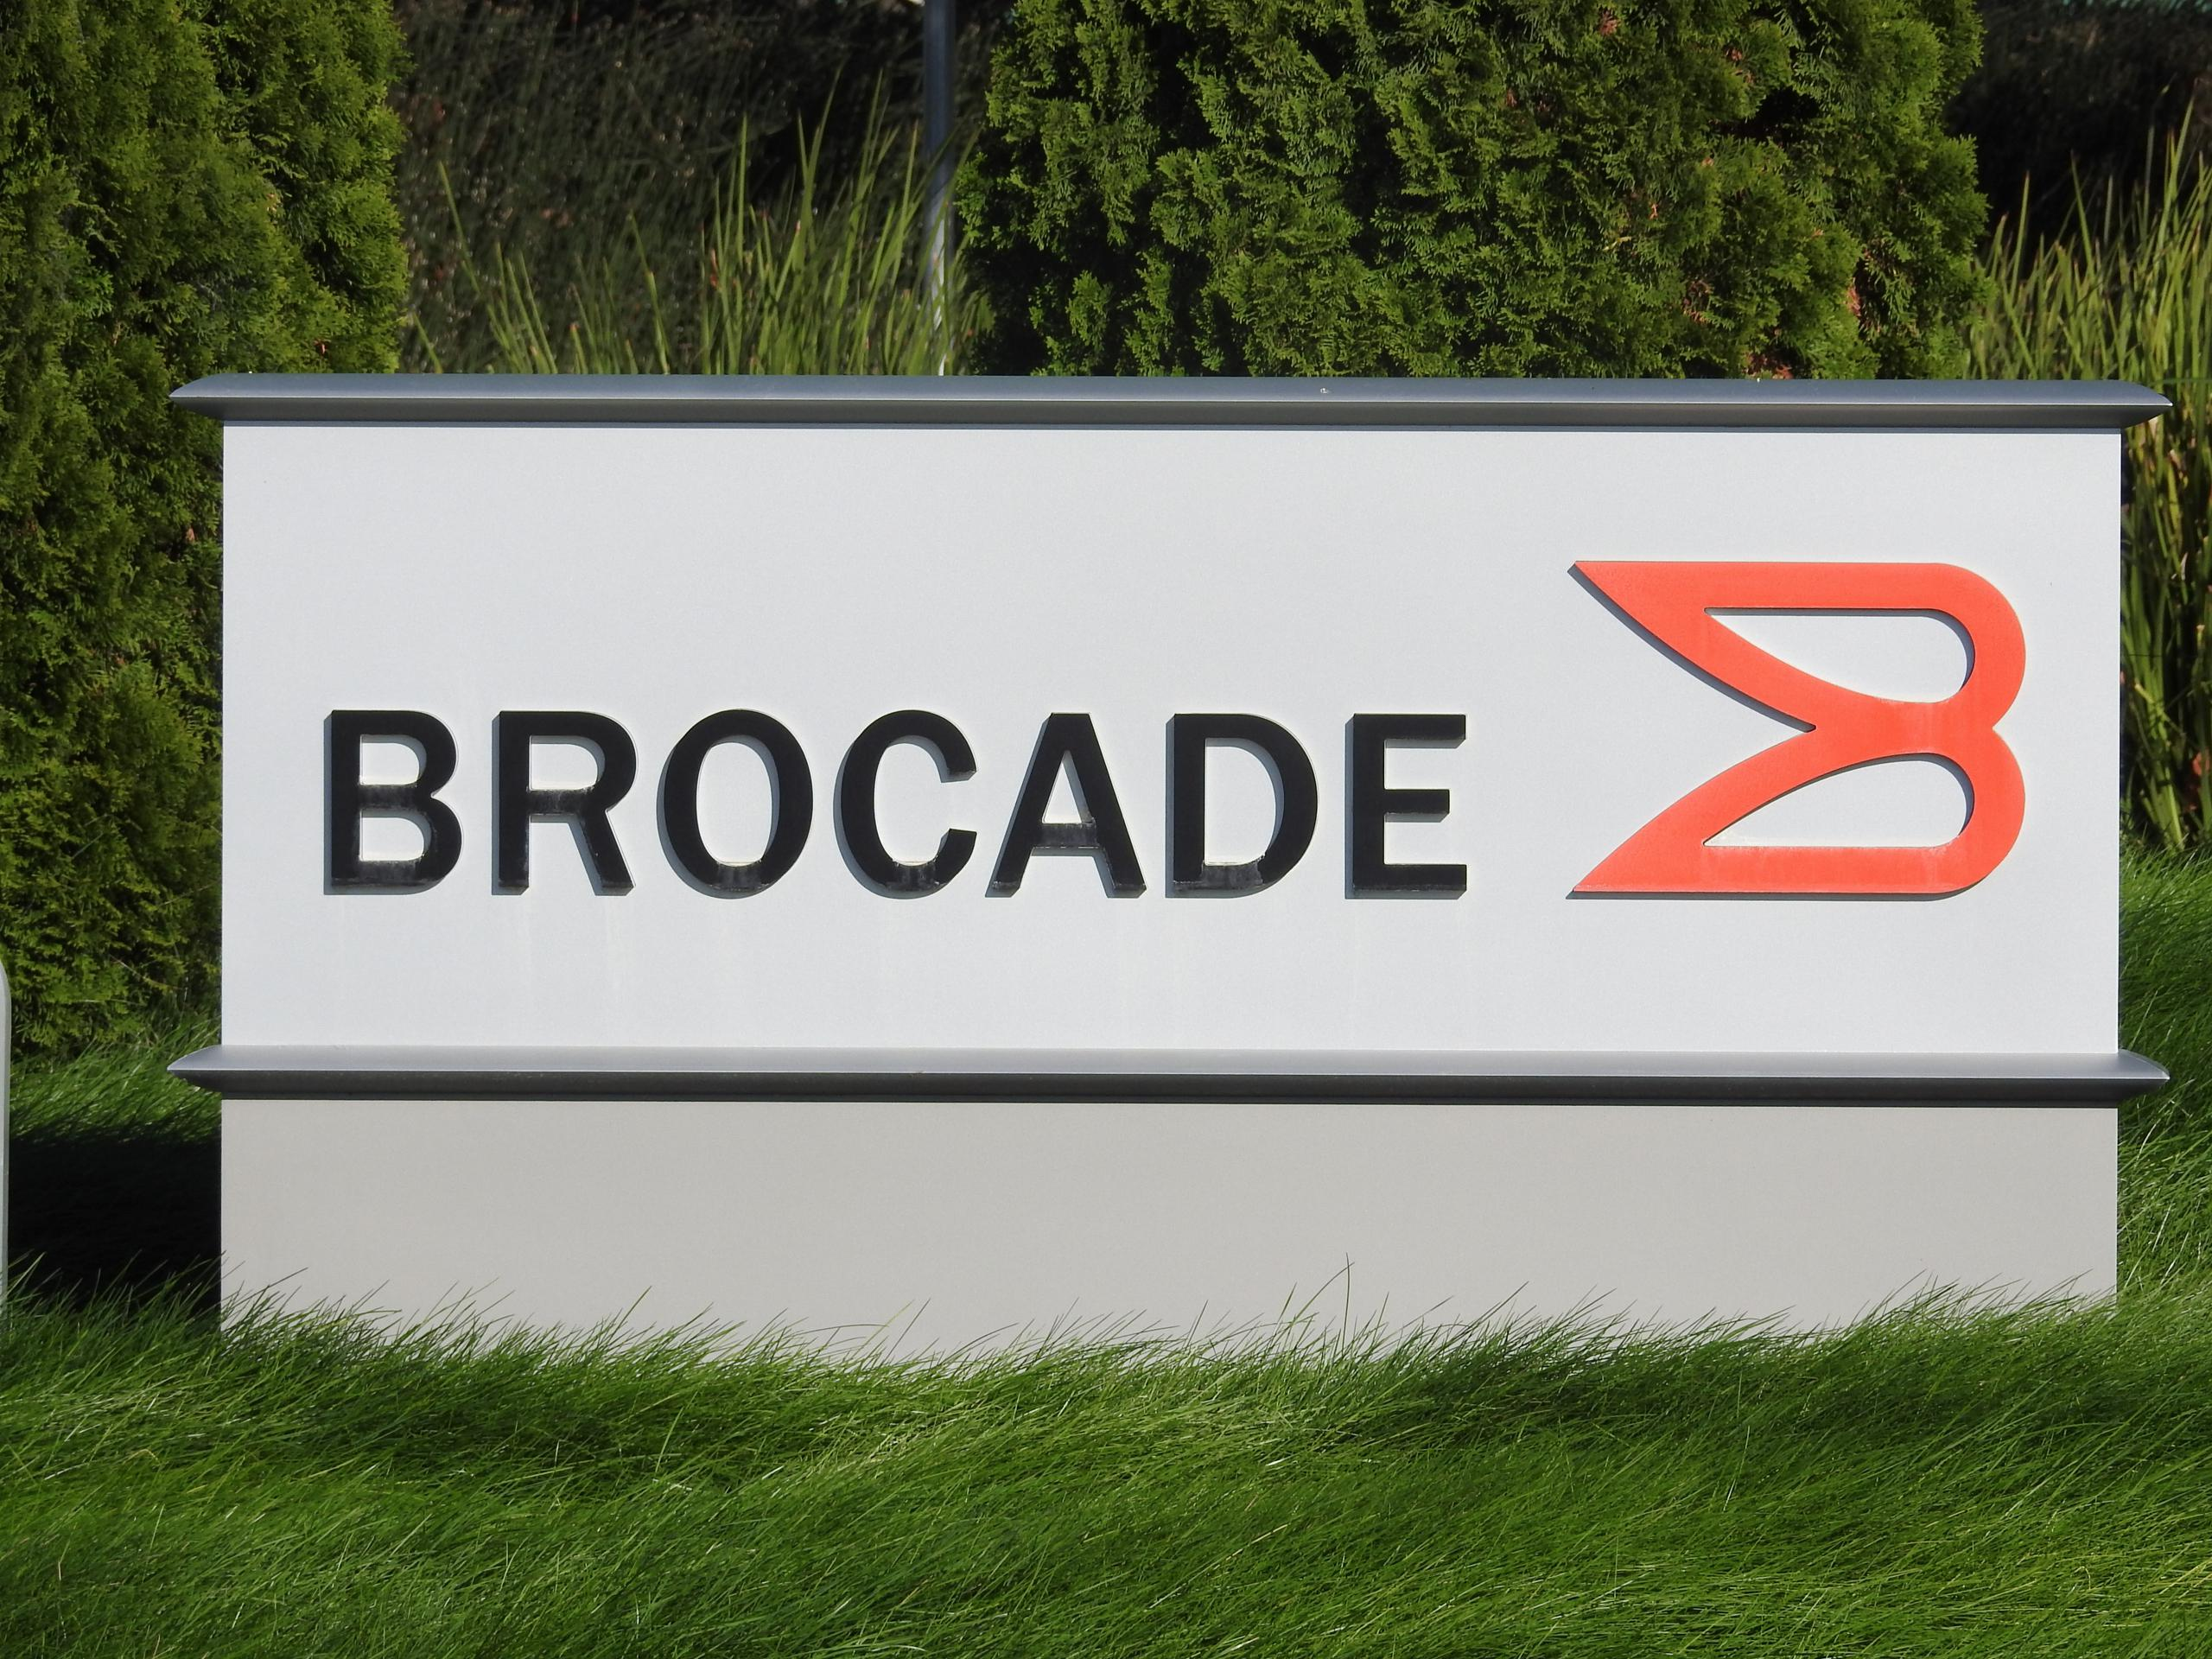 Entrance to Brocade's corporate headquarters in San Jose, California.